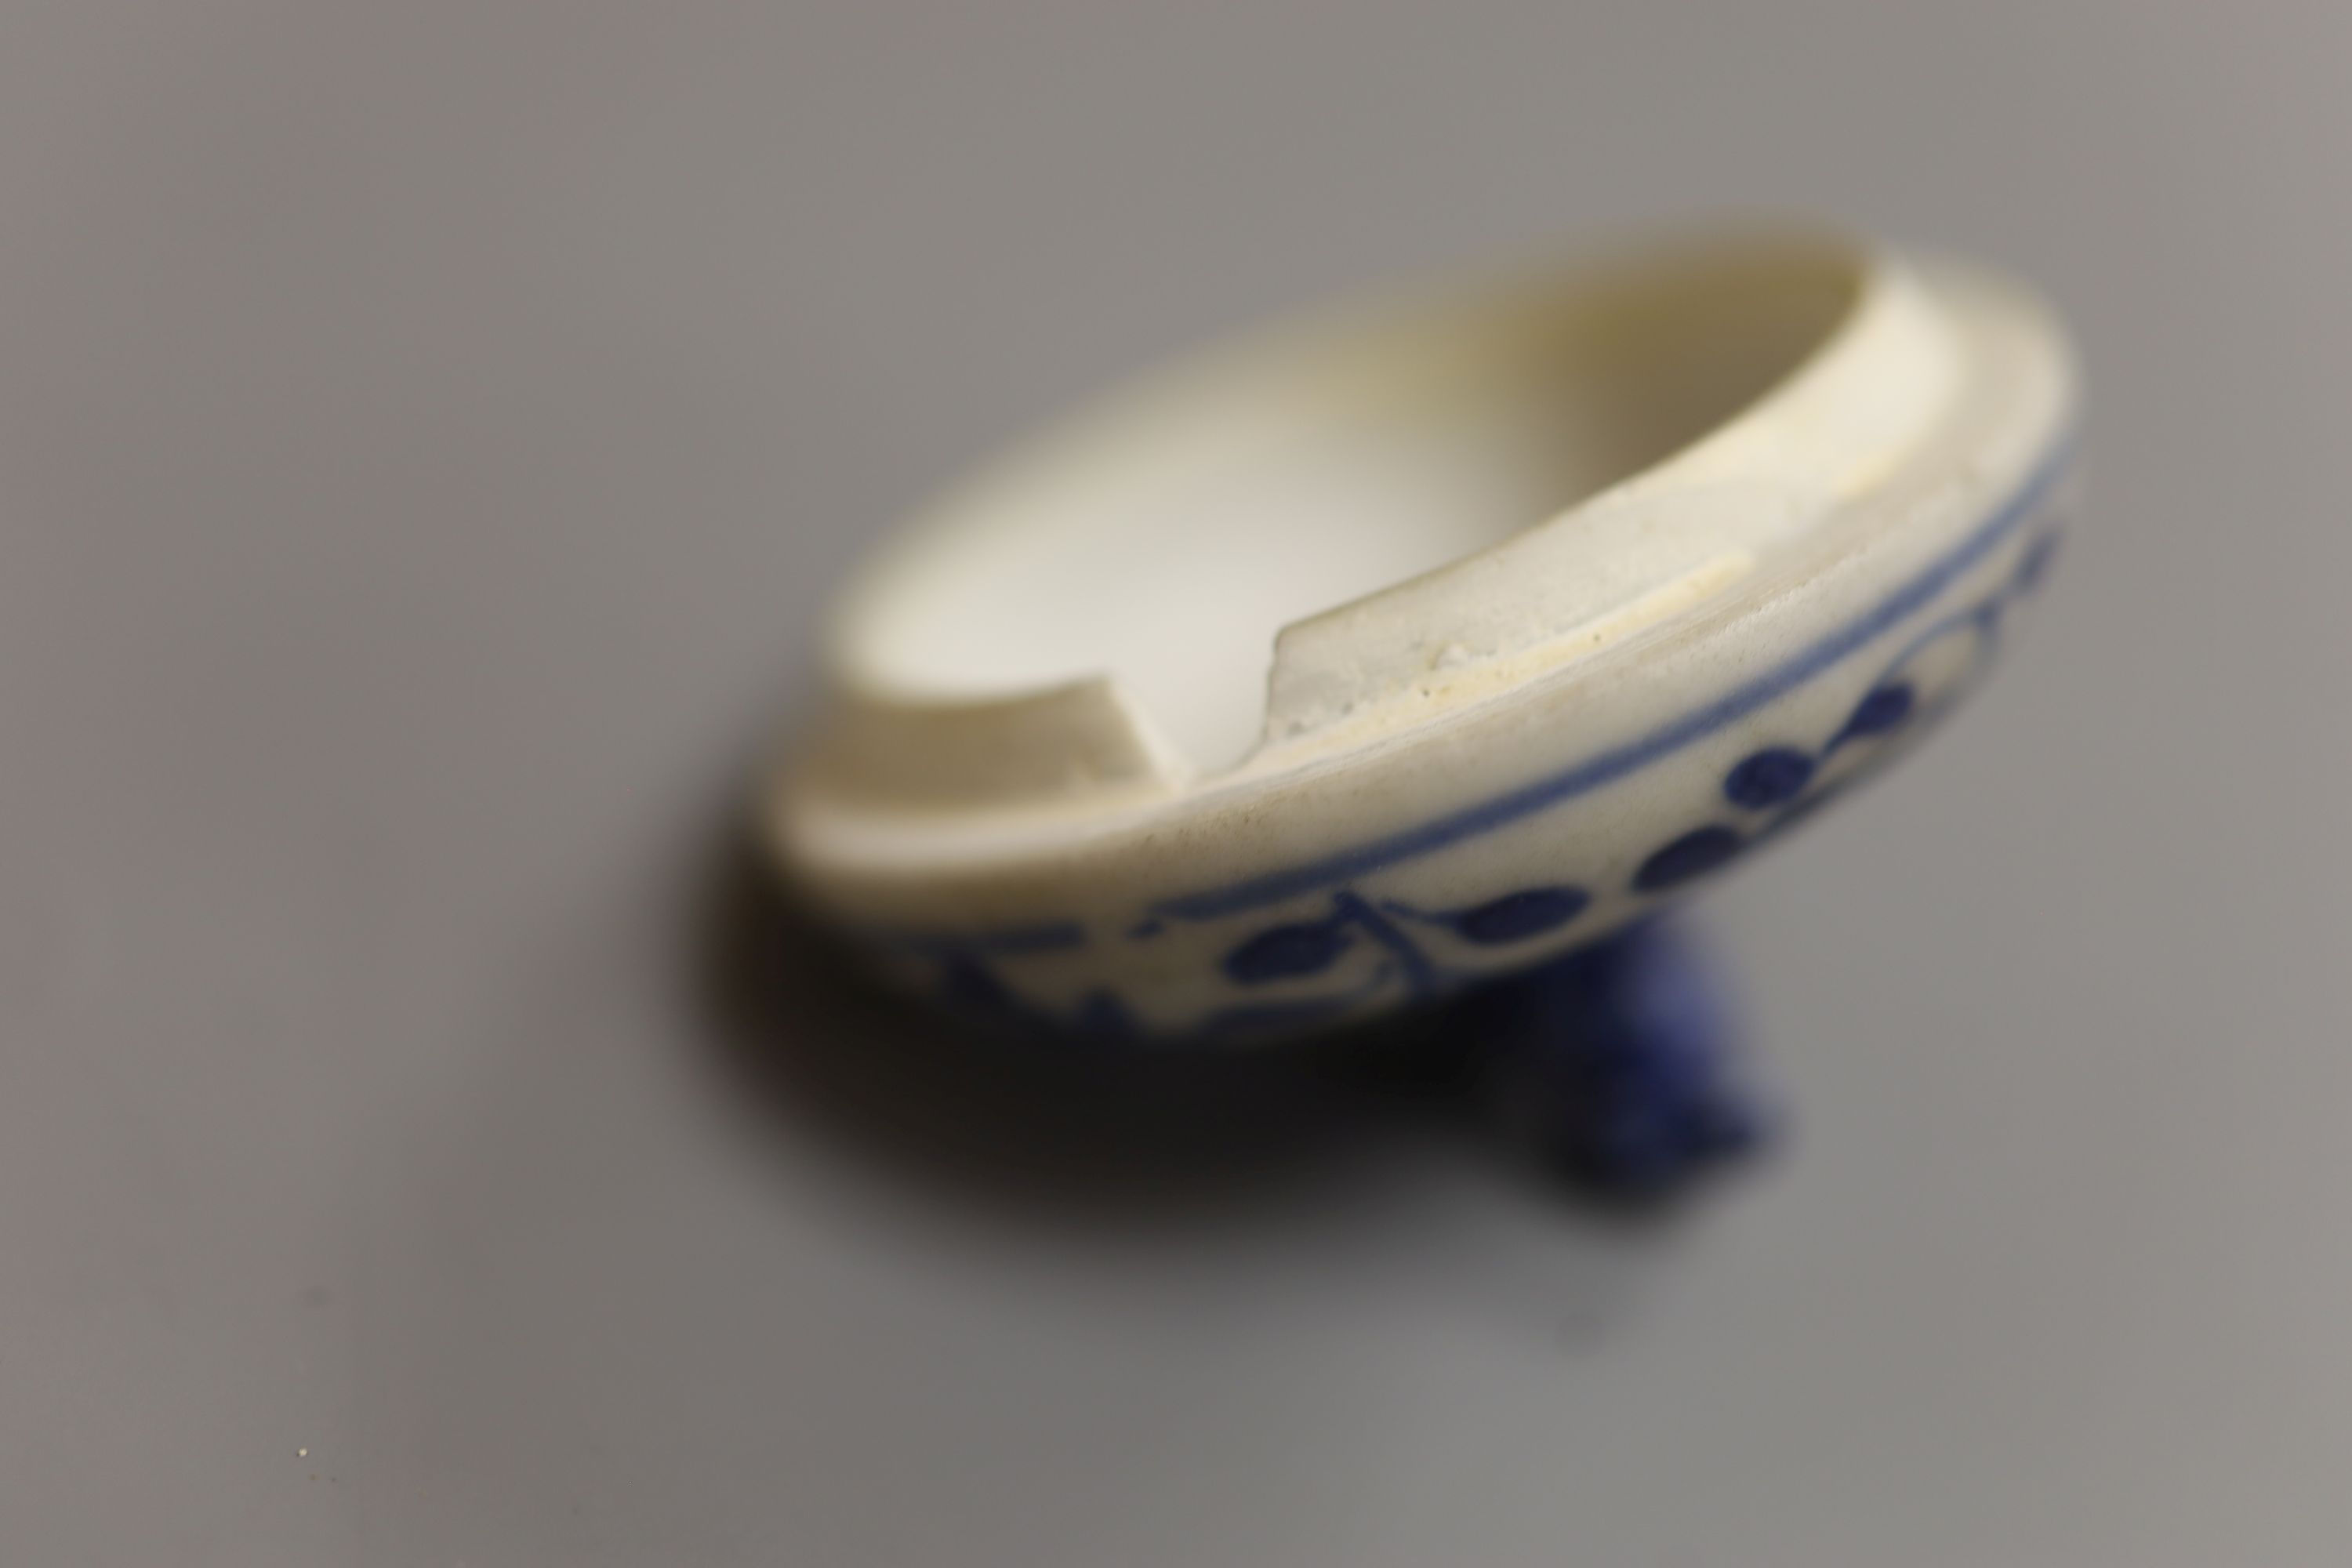 A Chinese Vungtao cargo blue and white mustard pot and cover, height 9cm - Image 6 of 7